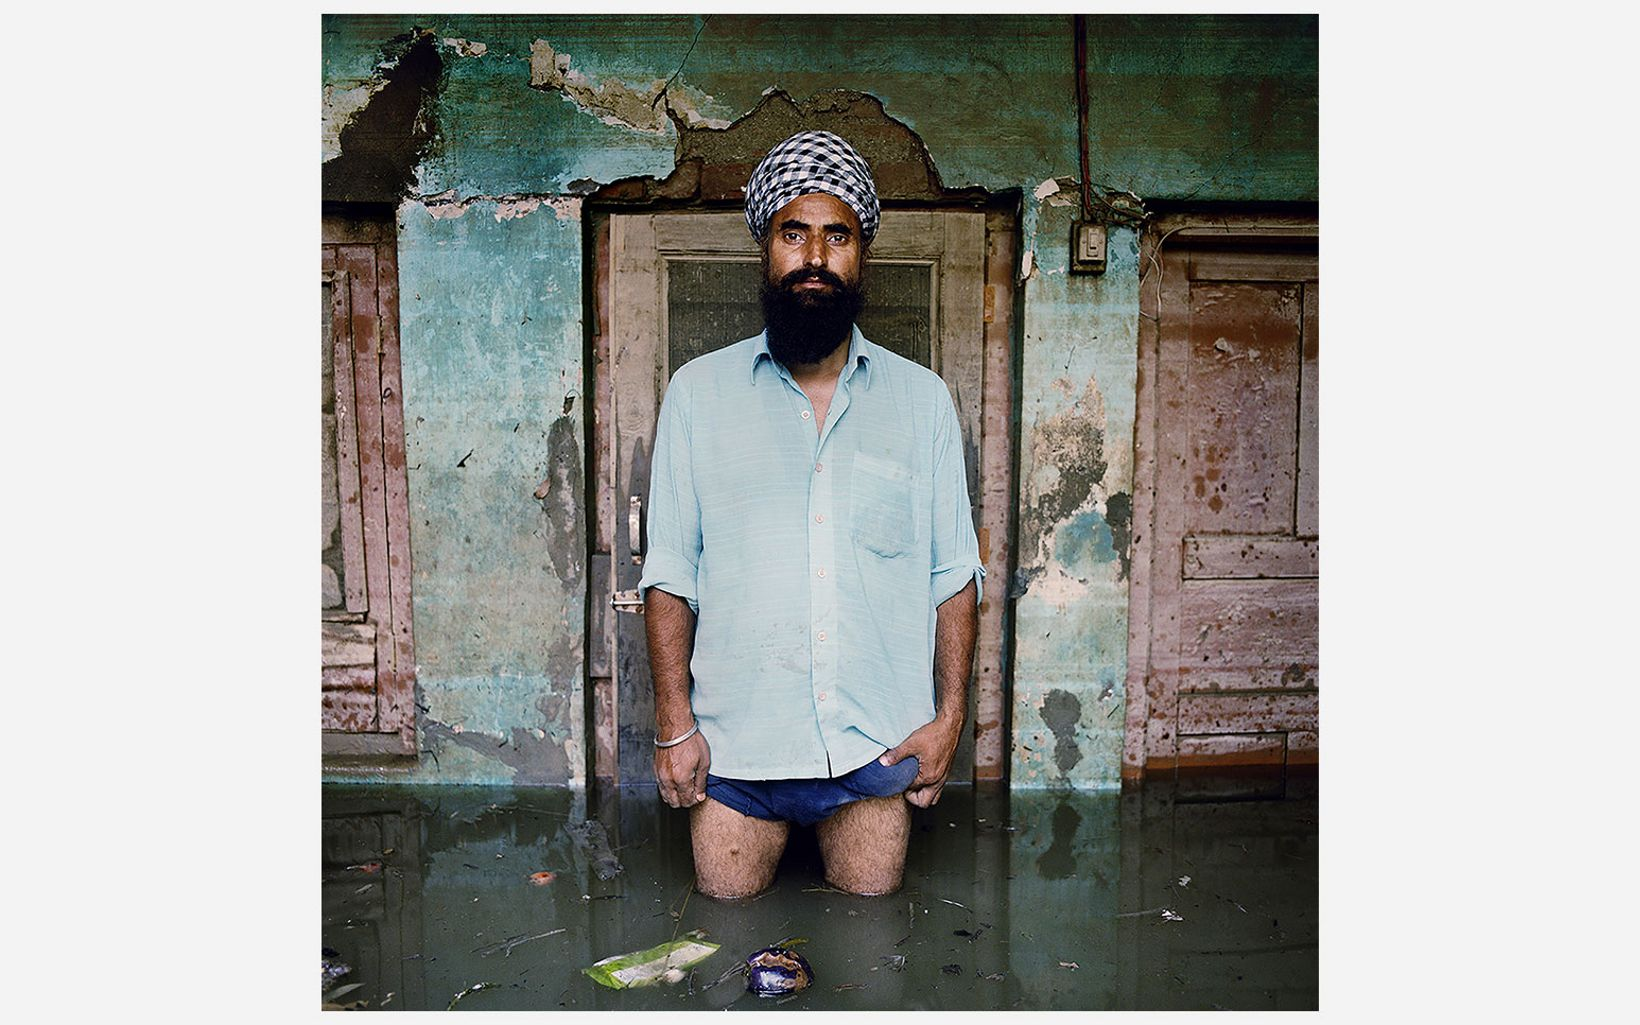 J.B. Singh stands in water deeper than his knees in Kashmir, India